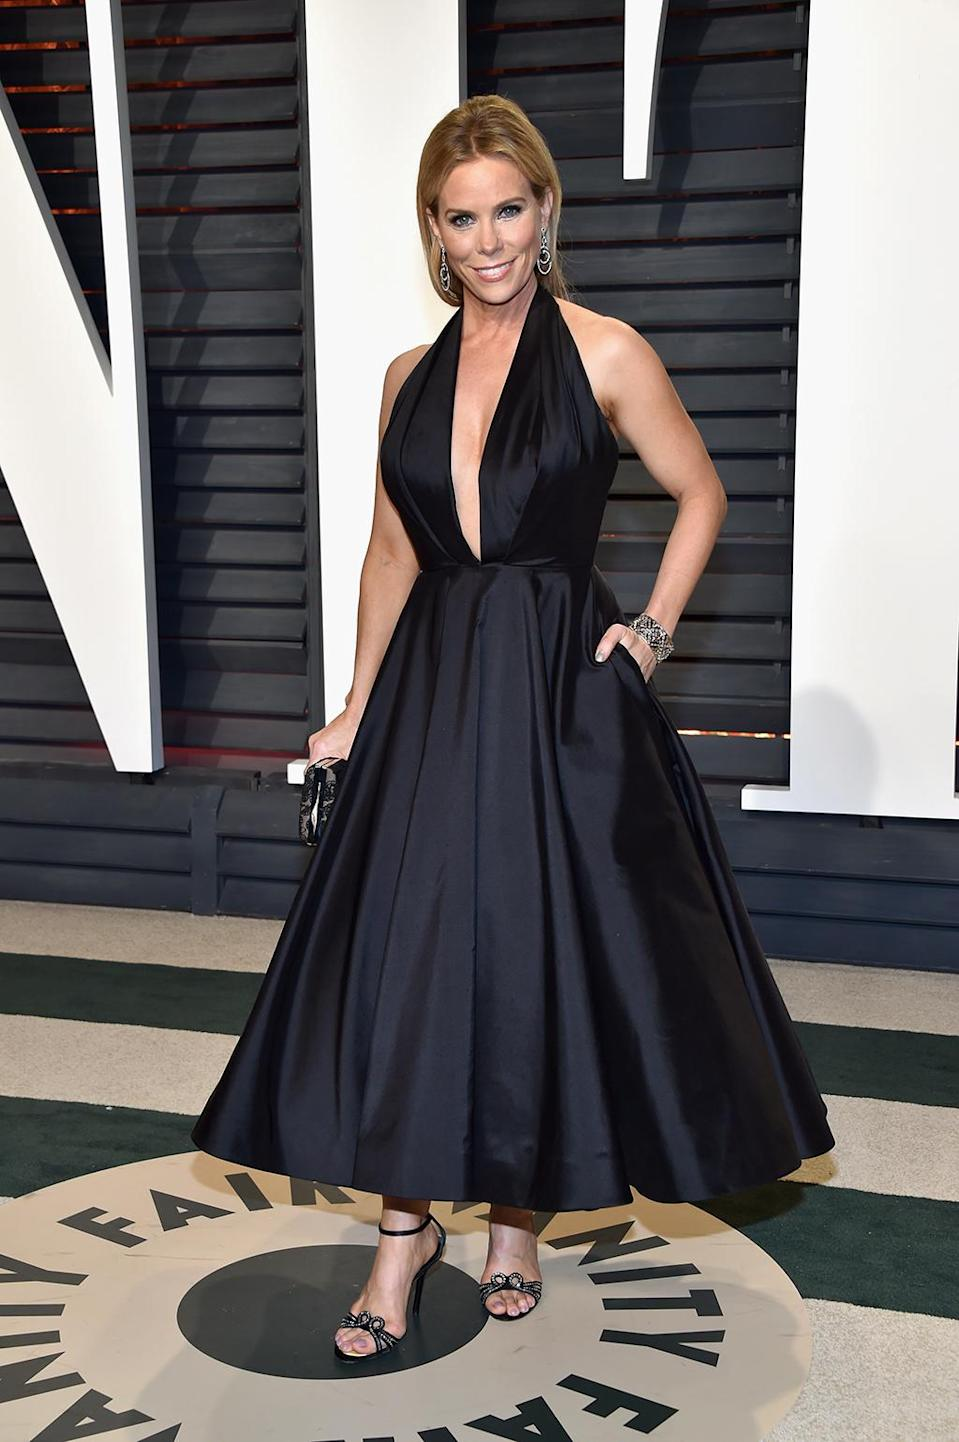 <p>Cheryl Hines attends the 2017 Vanity Fair Oscar Party hosted by Graydon Carter at Wallis Annenberg Center for the Performing Arts on February 26, 2017 in Beverly Hills, California. (Photo by Pascal Le Segretain/Getty Images) </p>